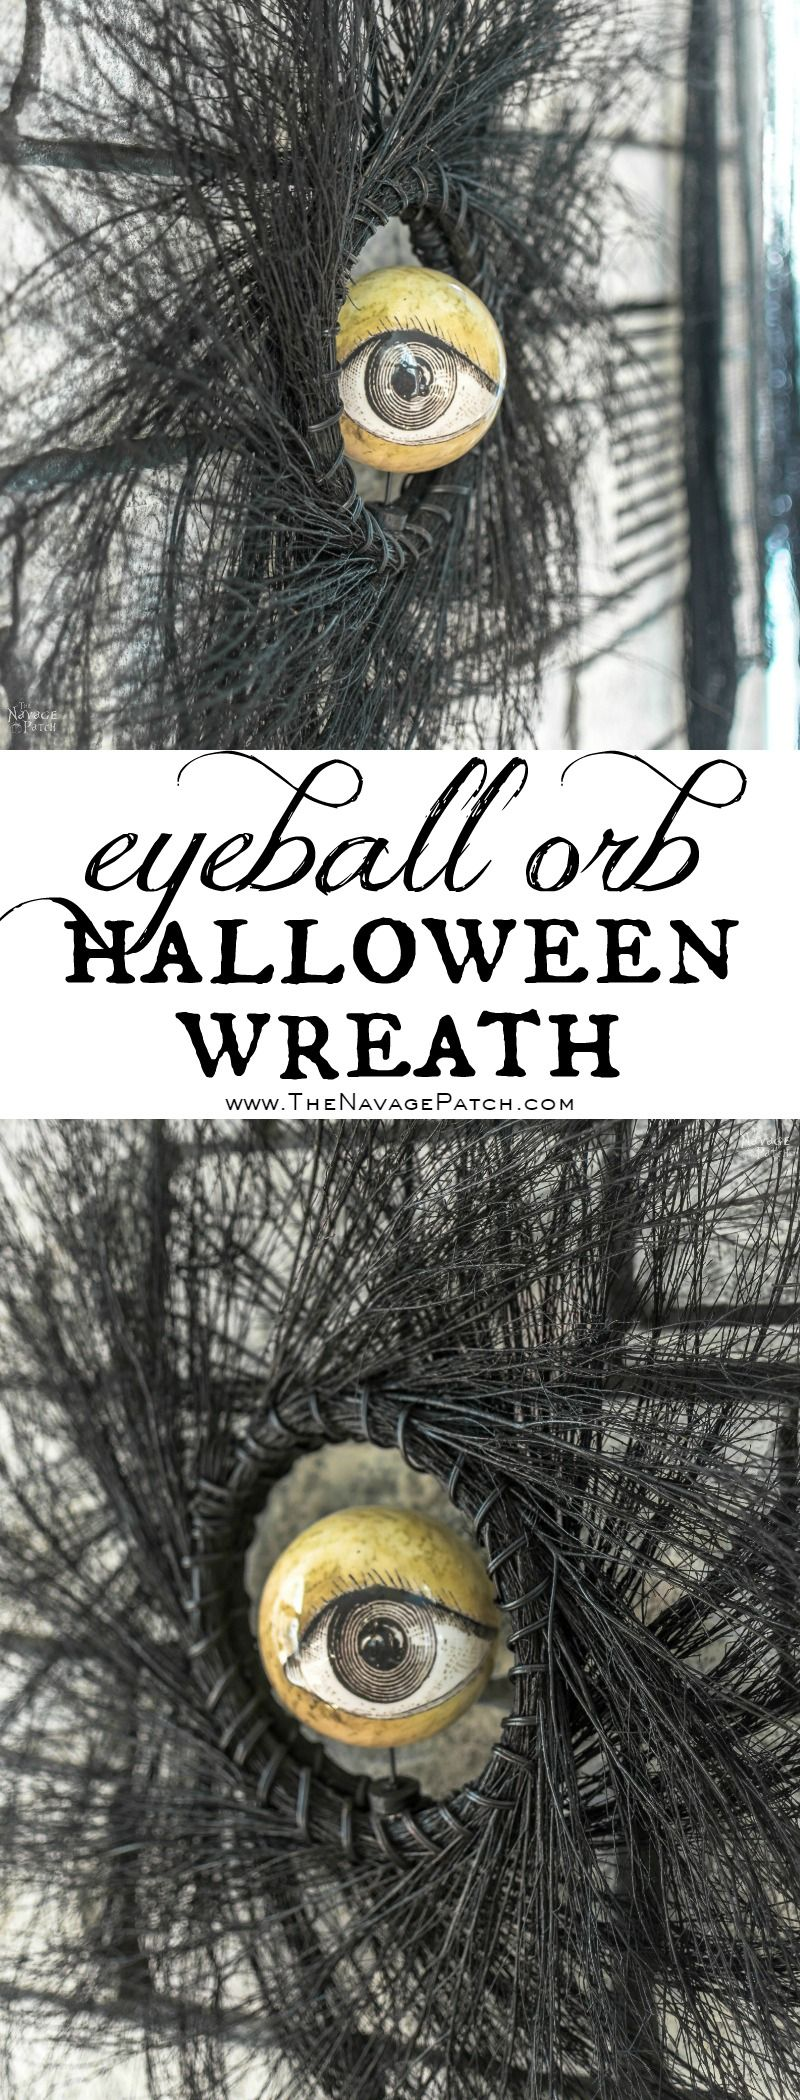 Eyeball Orb Halloween Wreath | Easy and budget friendly DIY Halloween wreath| Quick and elegant Halloween wreath | Fun and spooky Halloween decorations| TheNavagePatch.com